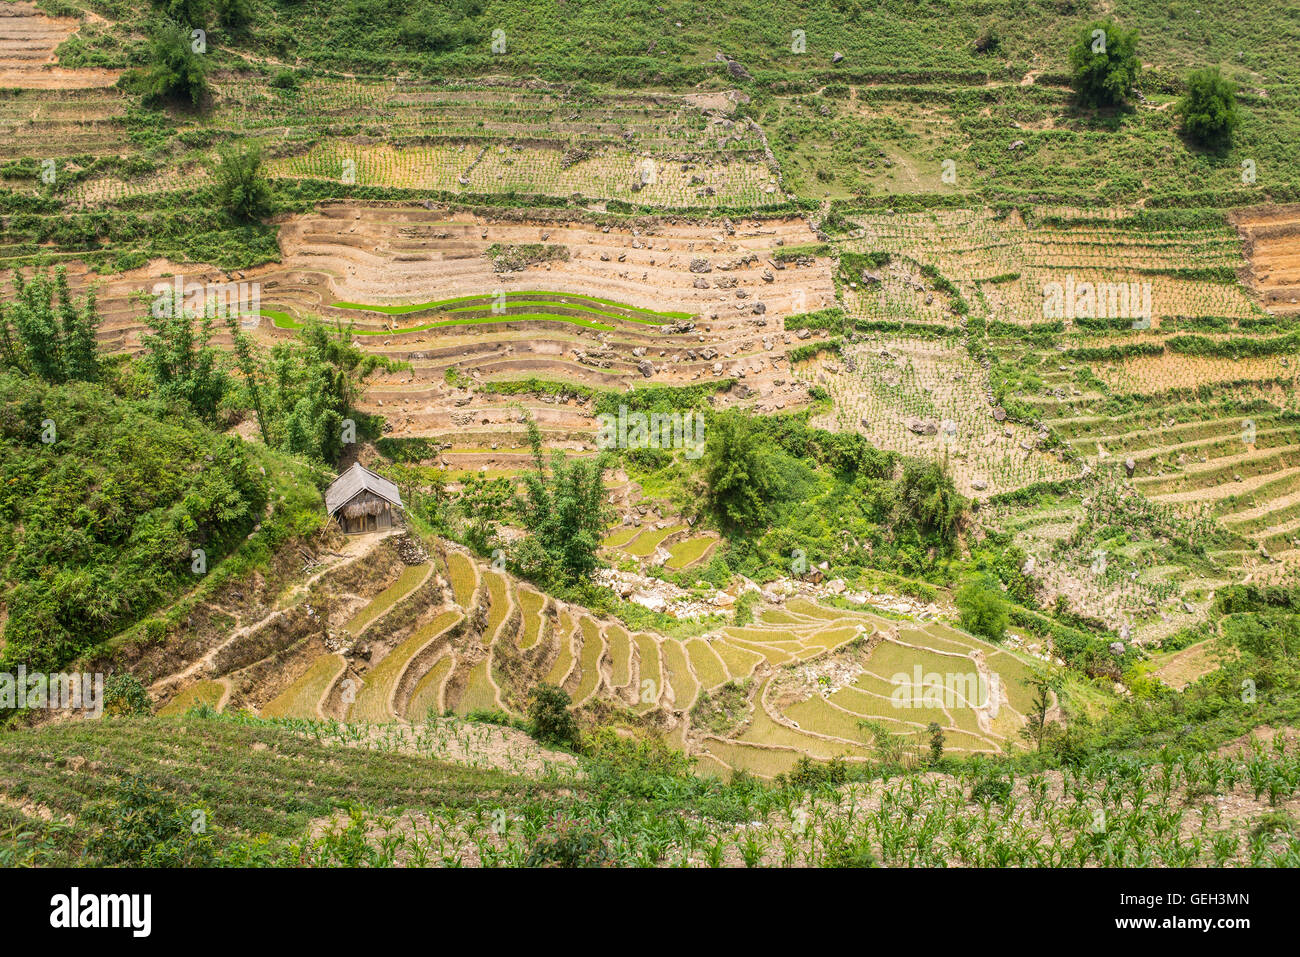 Small wooden hut and traditional rice paddies in Sapa, North Vietnam. - Stock Image